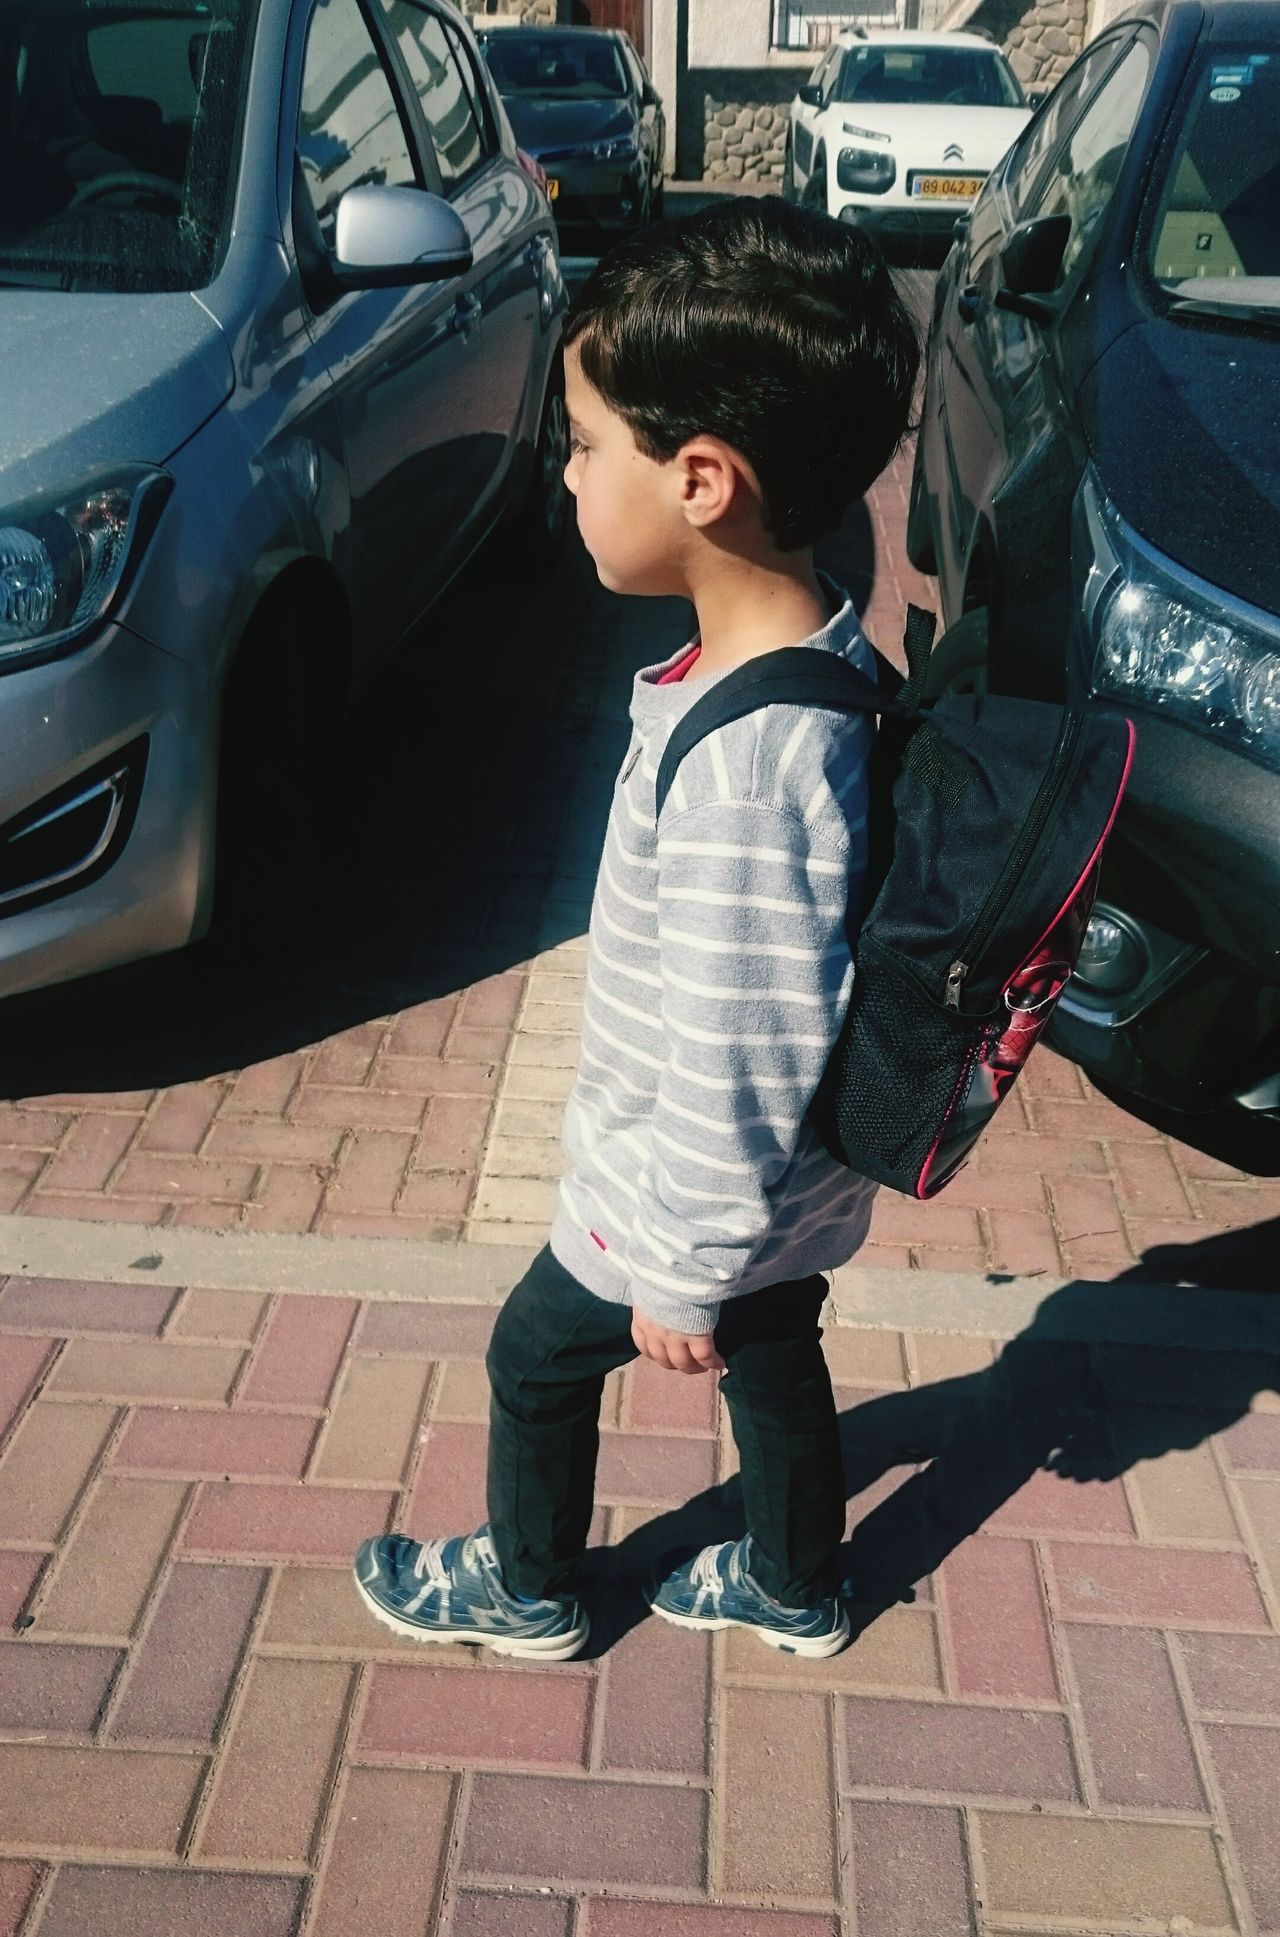 Car One Person Child People Outdoors Childhood Transportation Full Length Day Walk School Boy Going To School